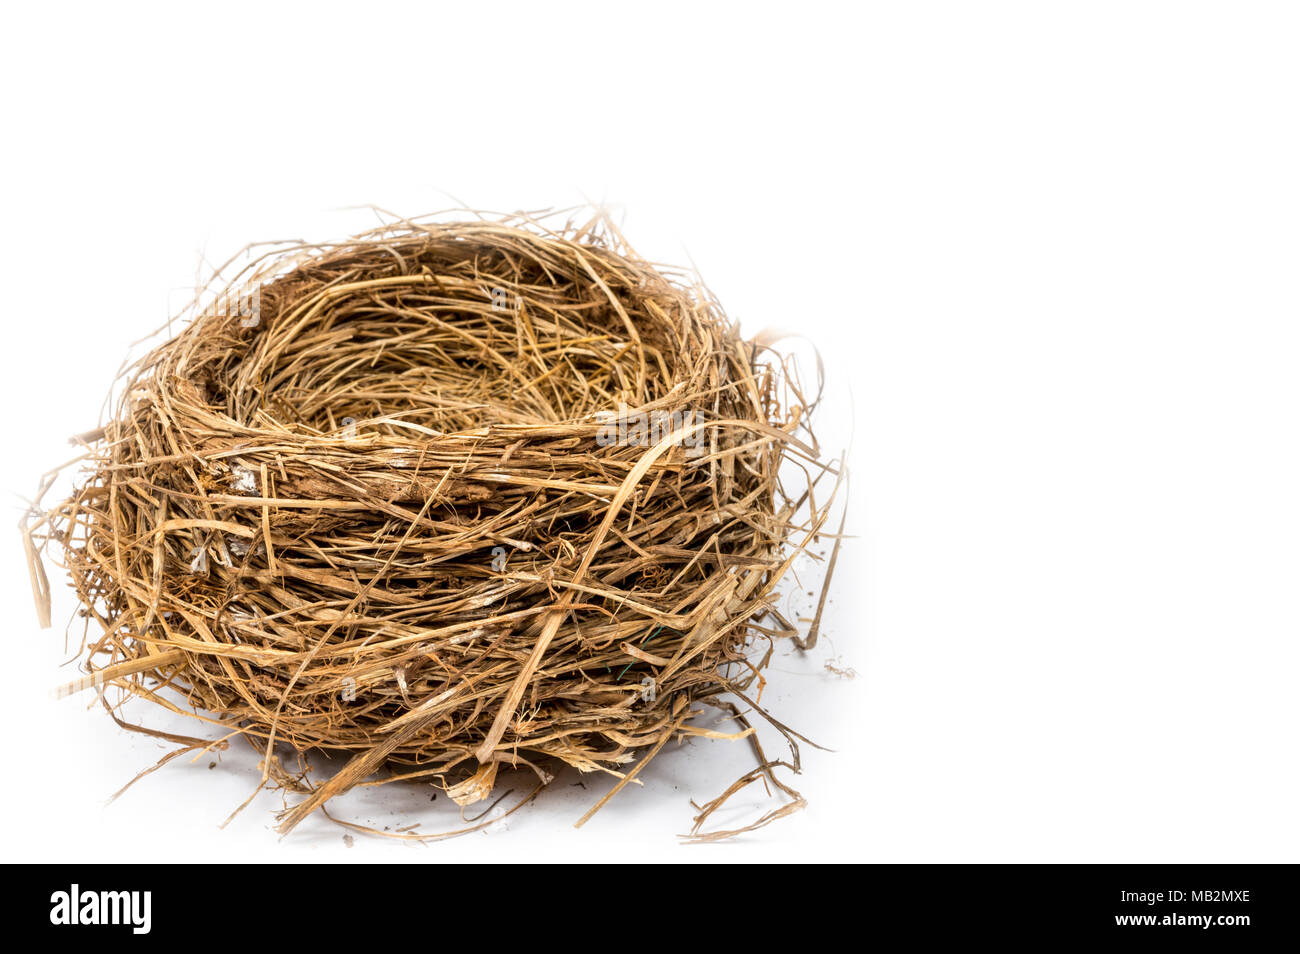 Horizontal side view of an empty bird's nest in the lower left hand corner of the shot.  White background.  Copy space. - Stock Image